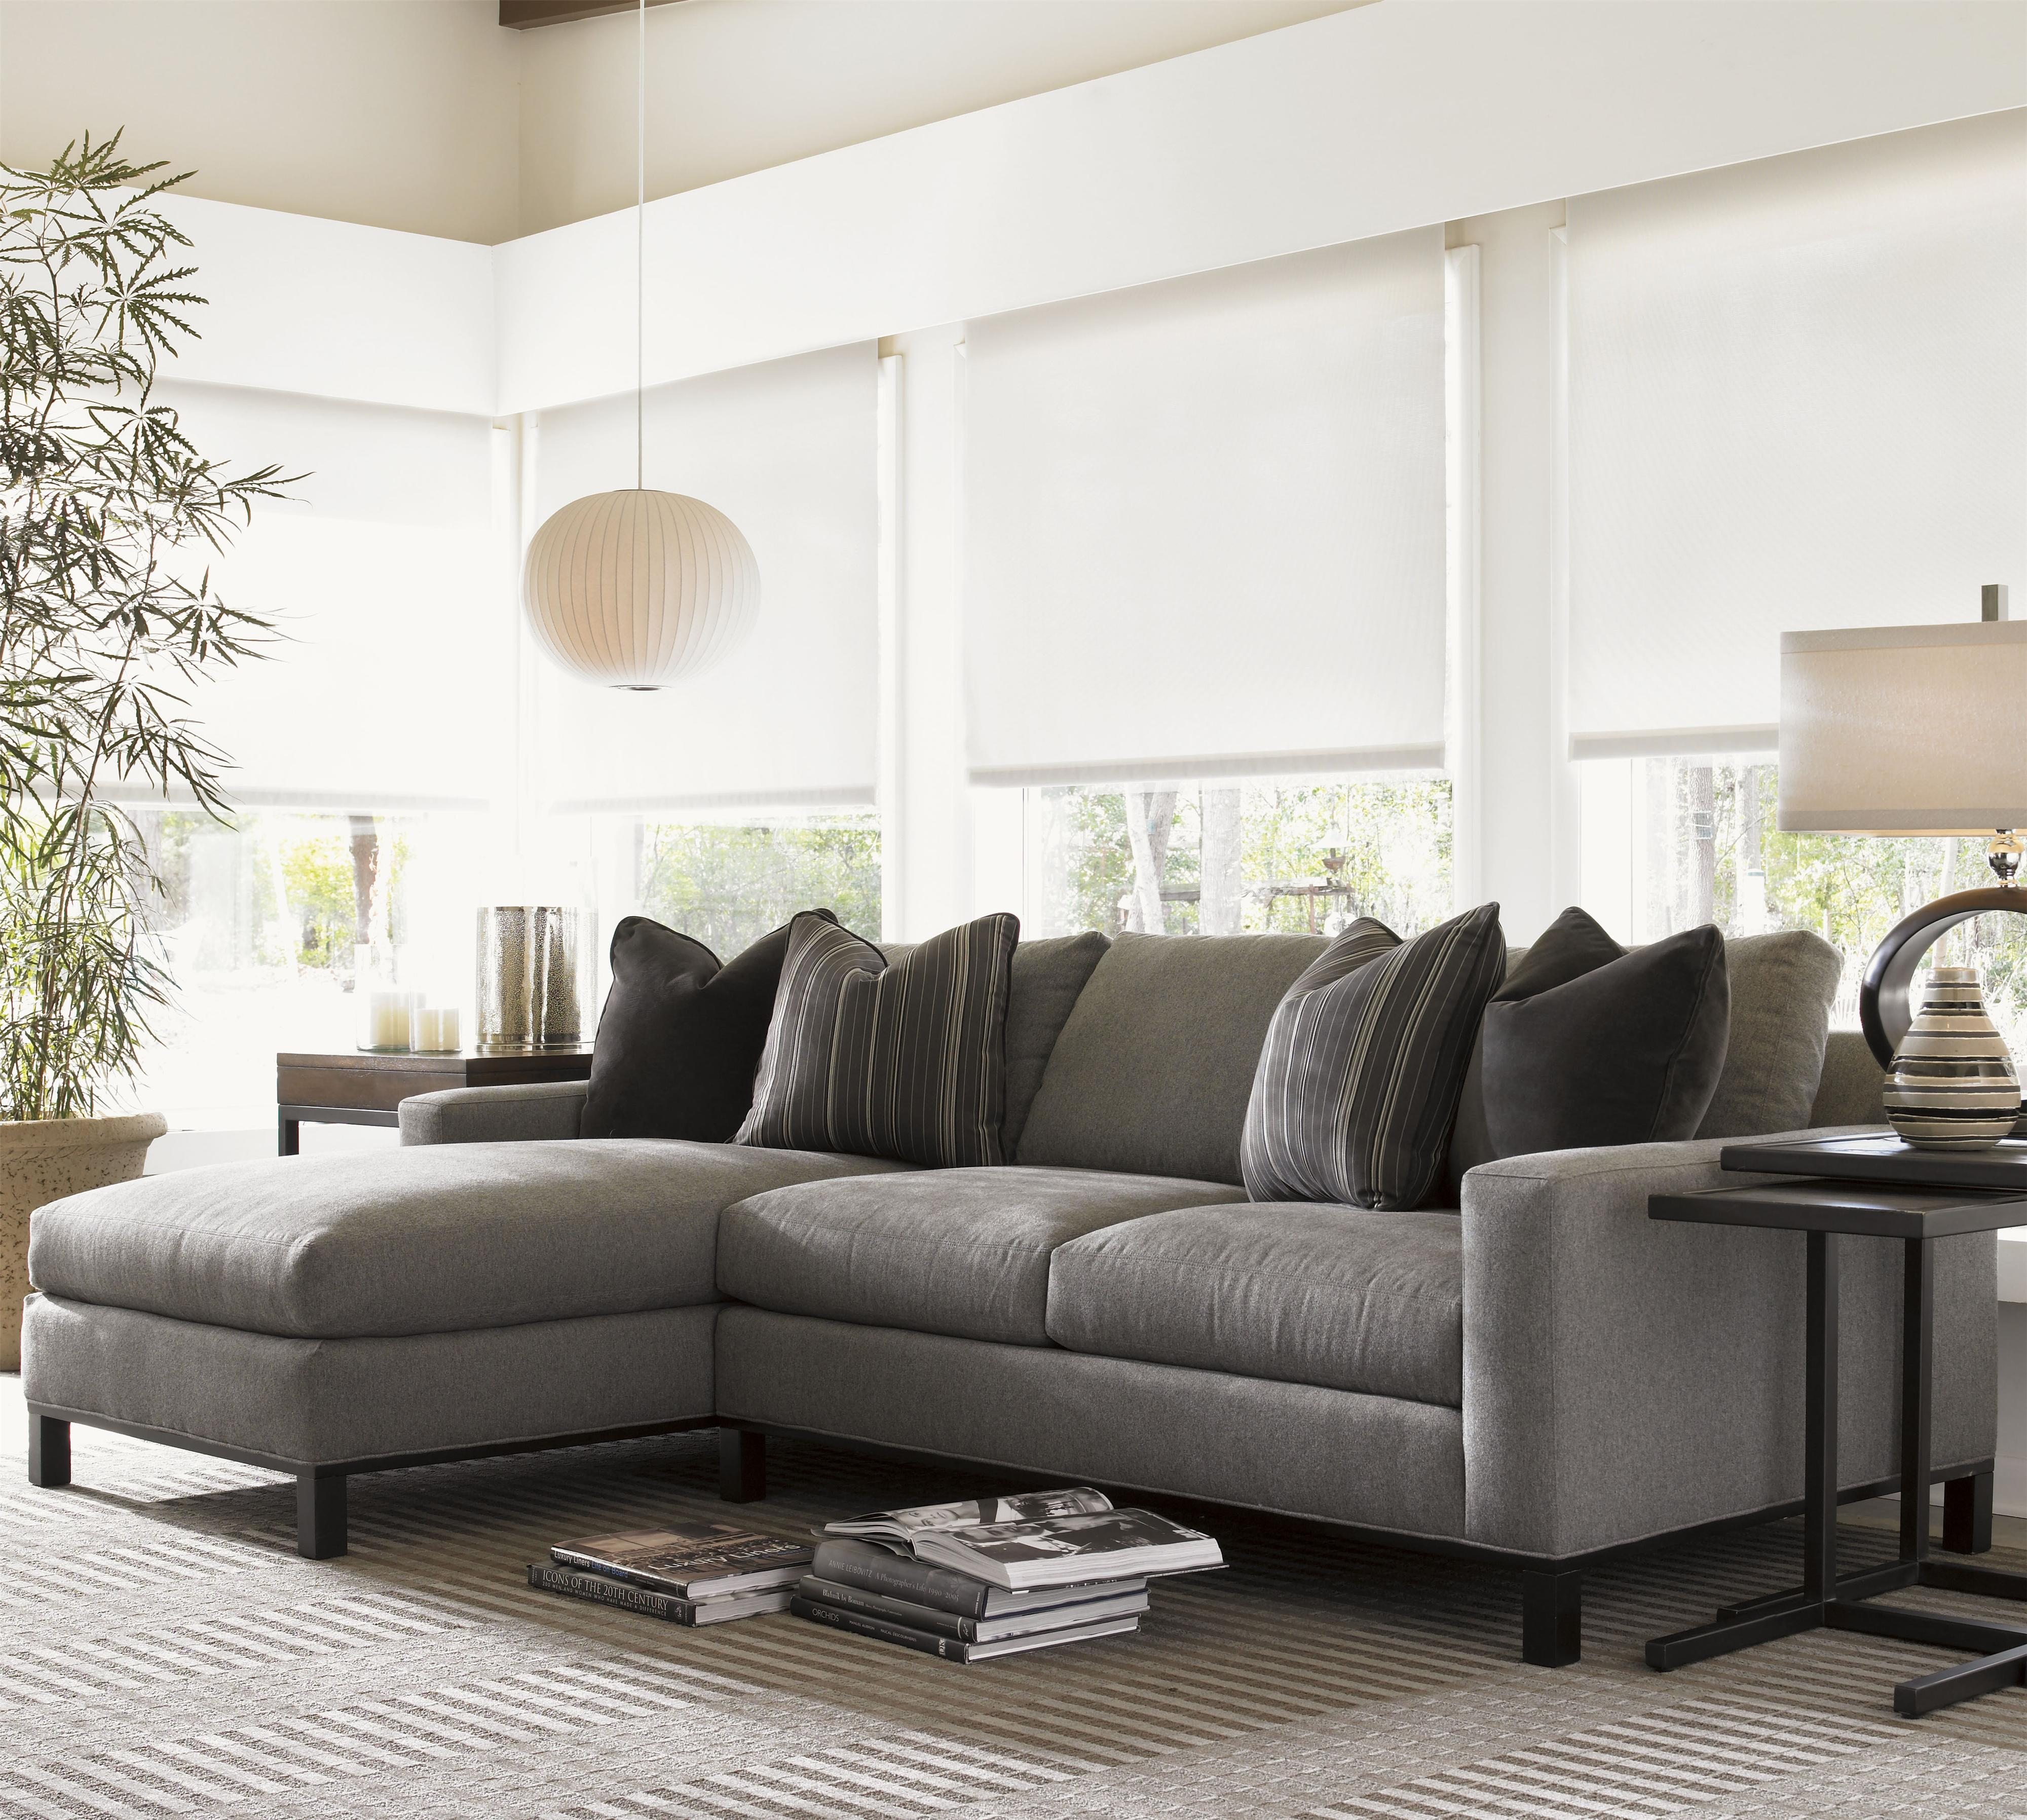 Lexington 11 South 2 Piece Upholstered Chronicle Sectional